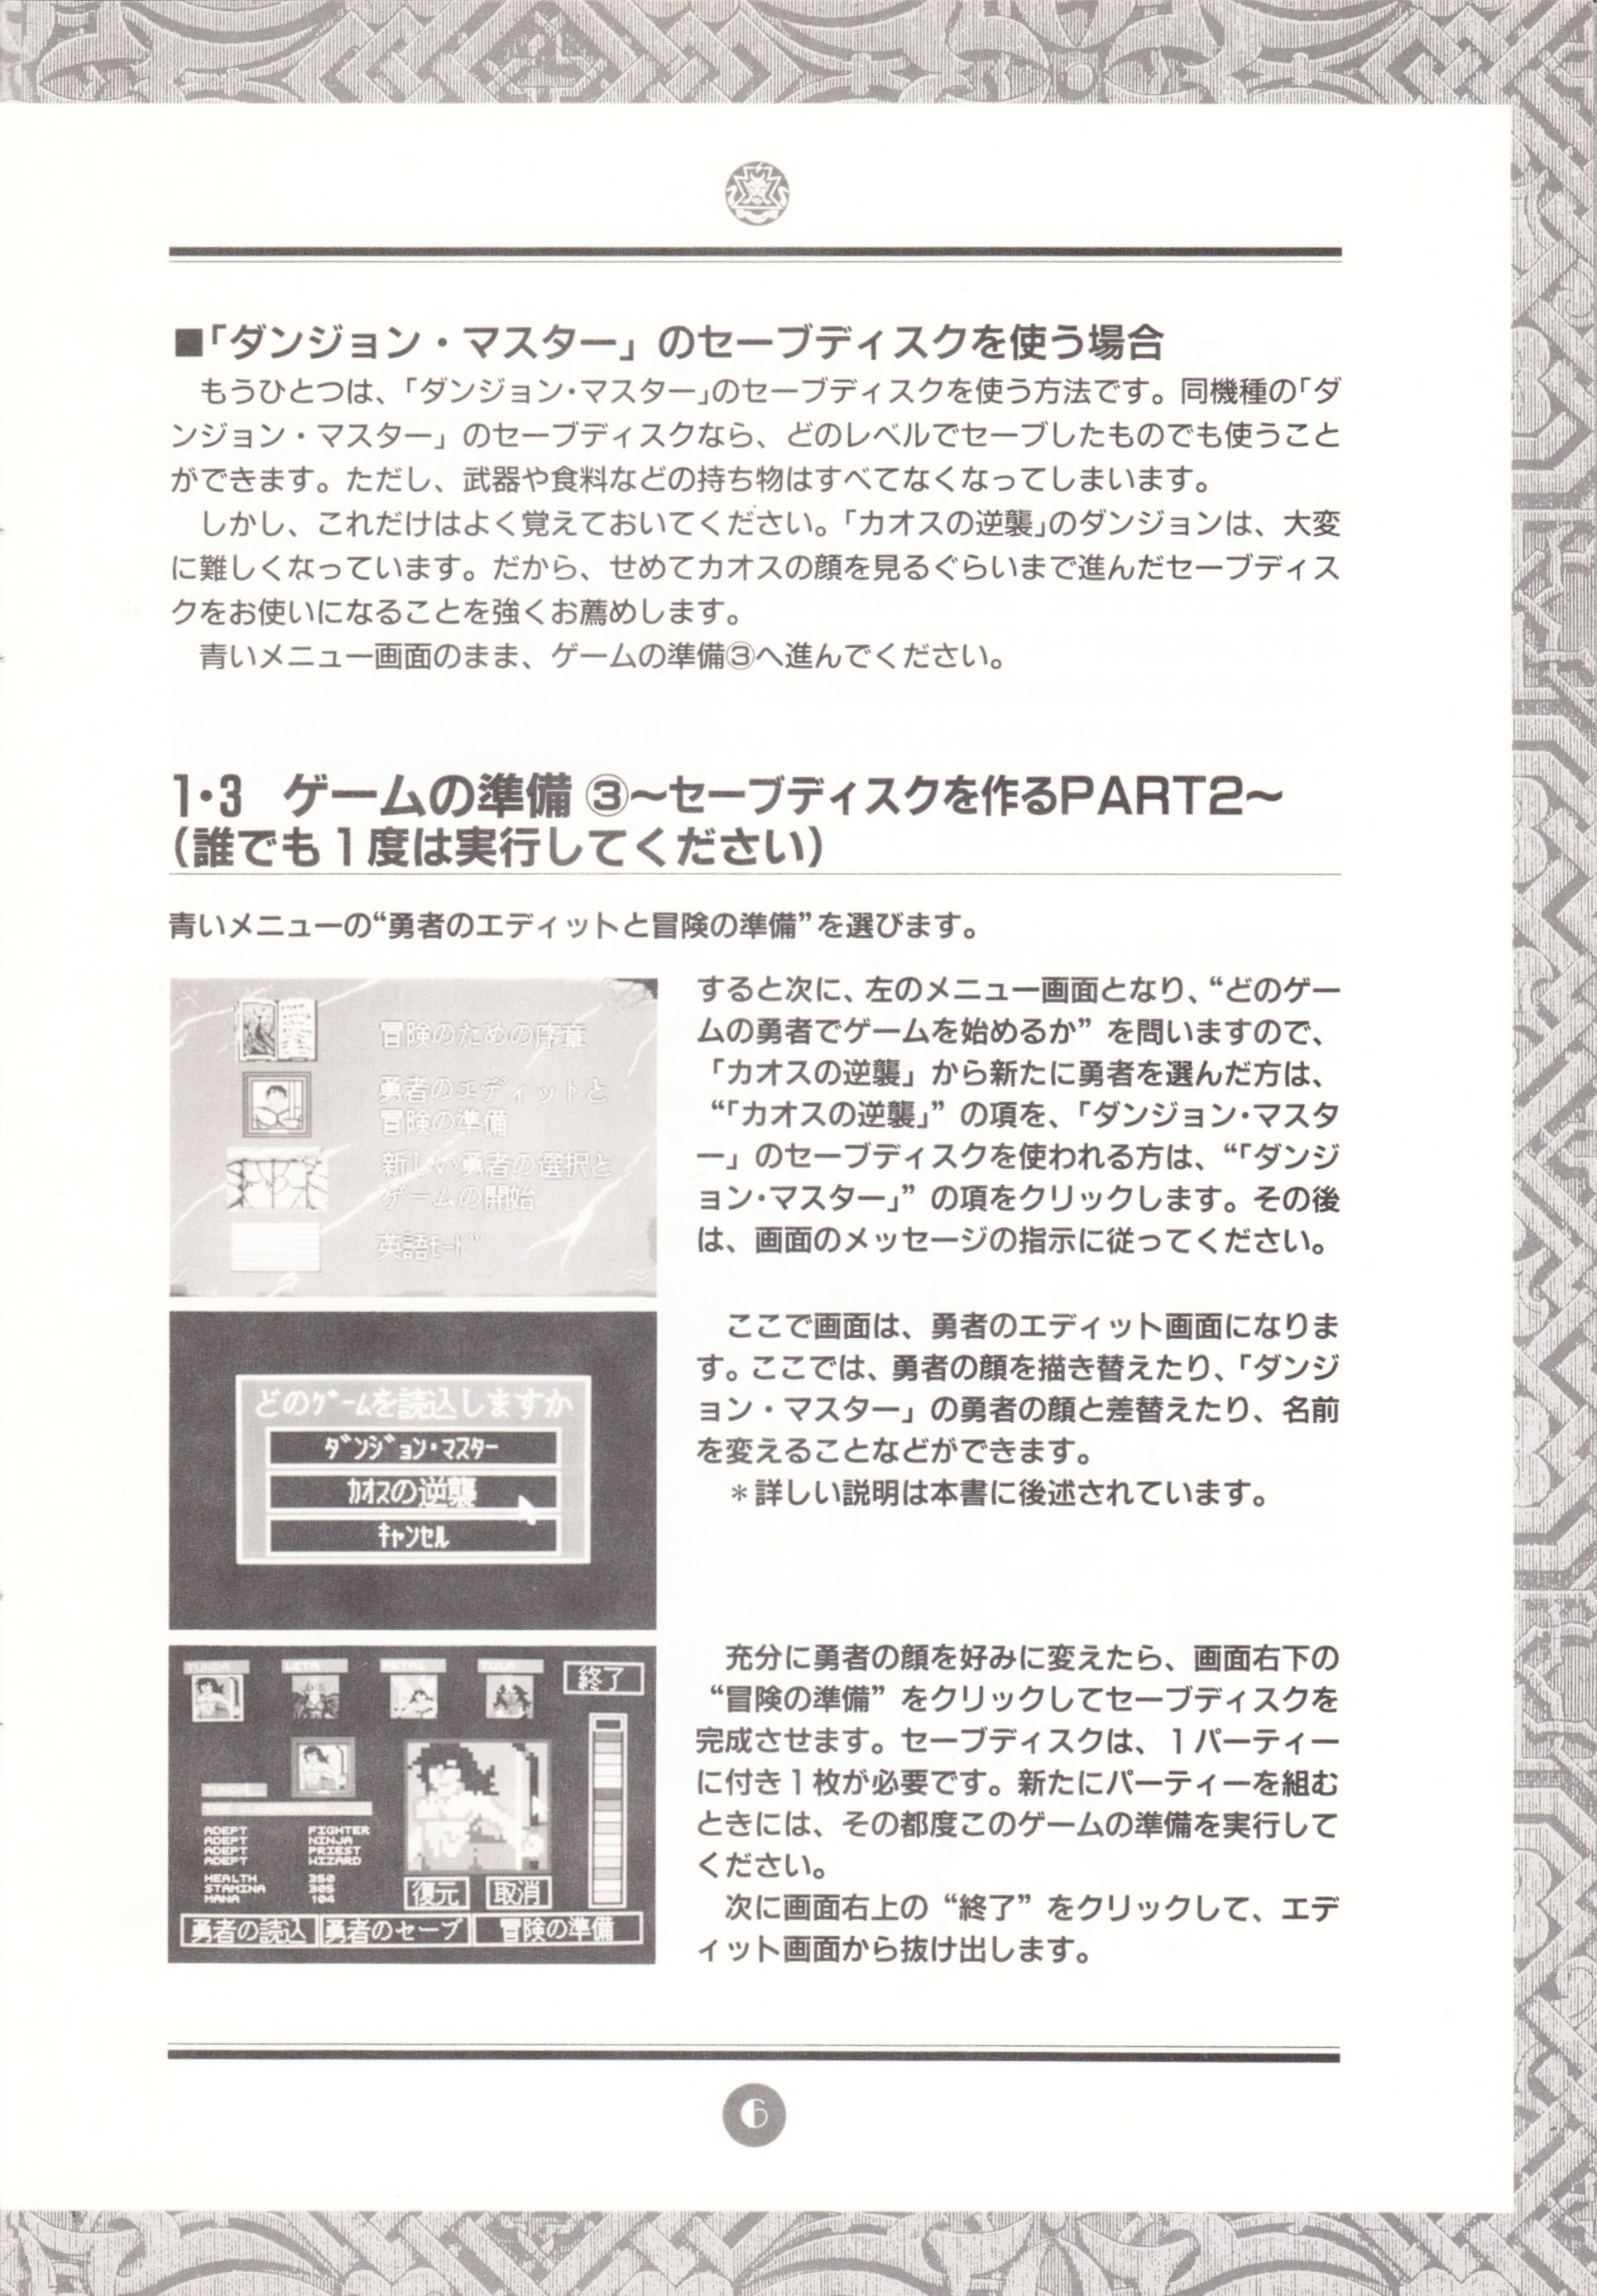 Game - Chaos Strikes Back - JP - FM Towns - An Operation Manual - Page 009 - Scan